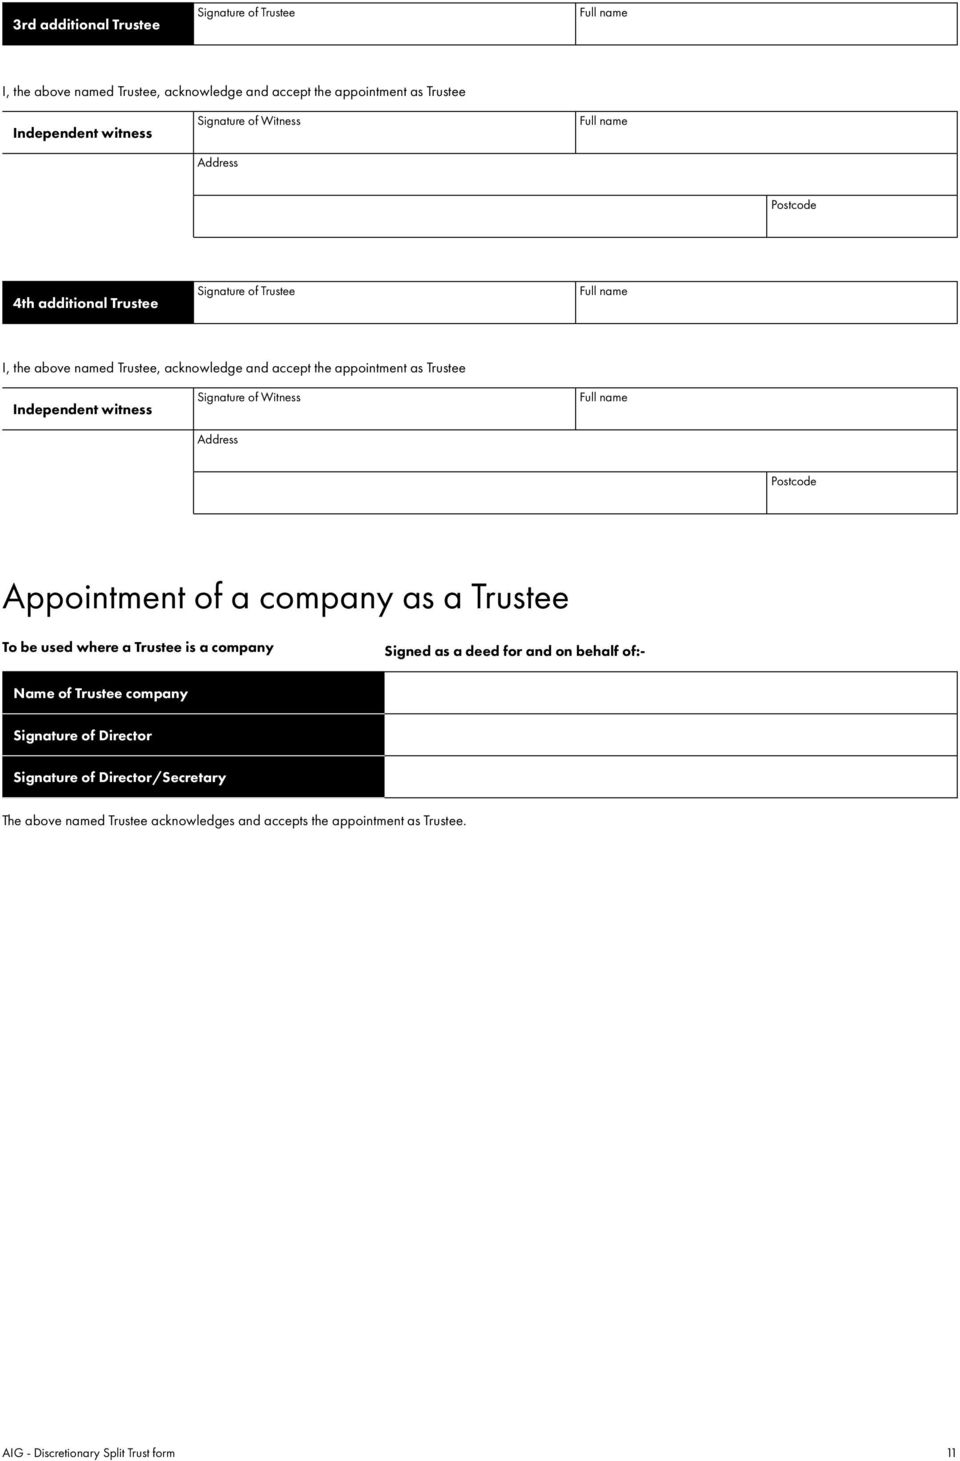 Appointment of a company as a Trustee To be used where a Trustee is a company Signed as a deed for and on behalf of:- Name of Trustee company